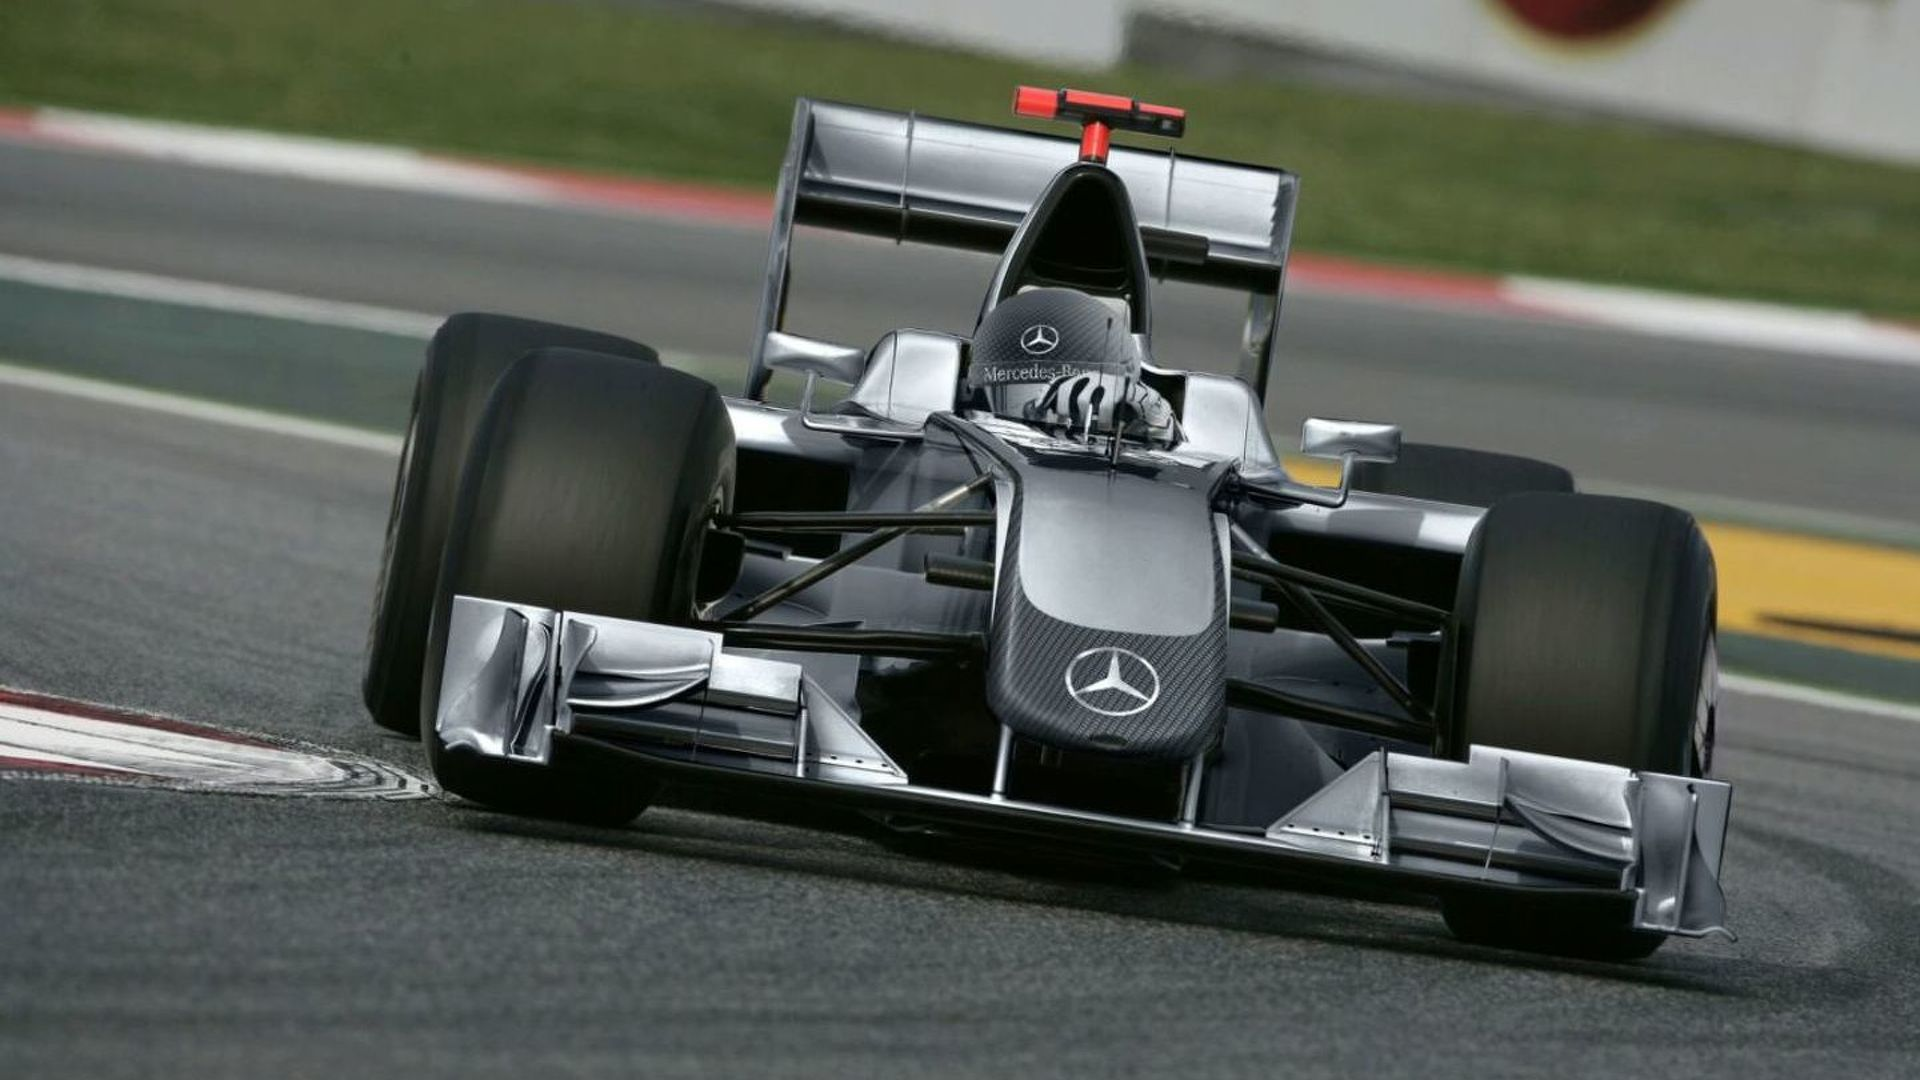 Mercedes seat would be 'dream' - Heidfeld